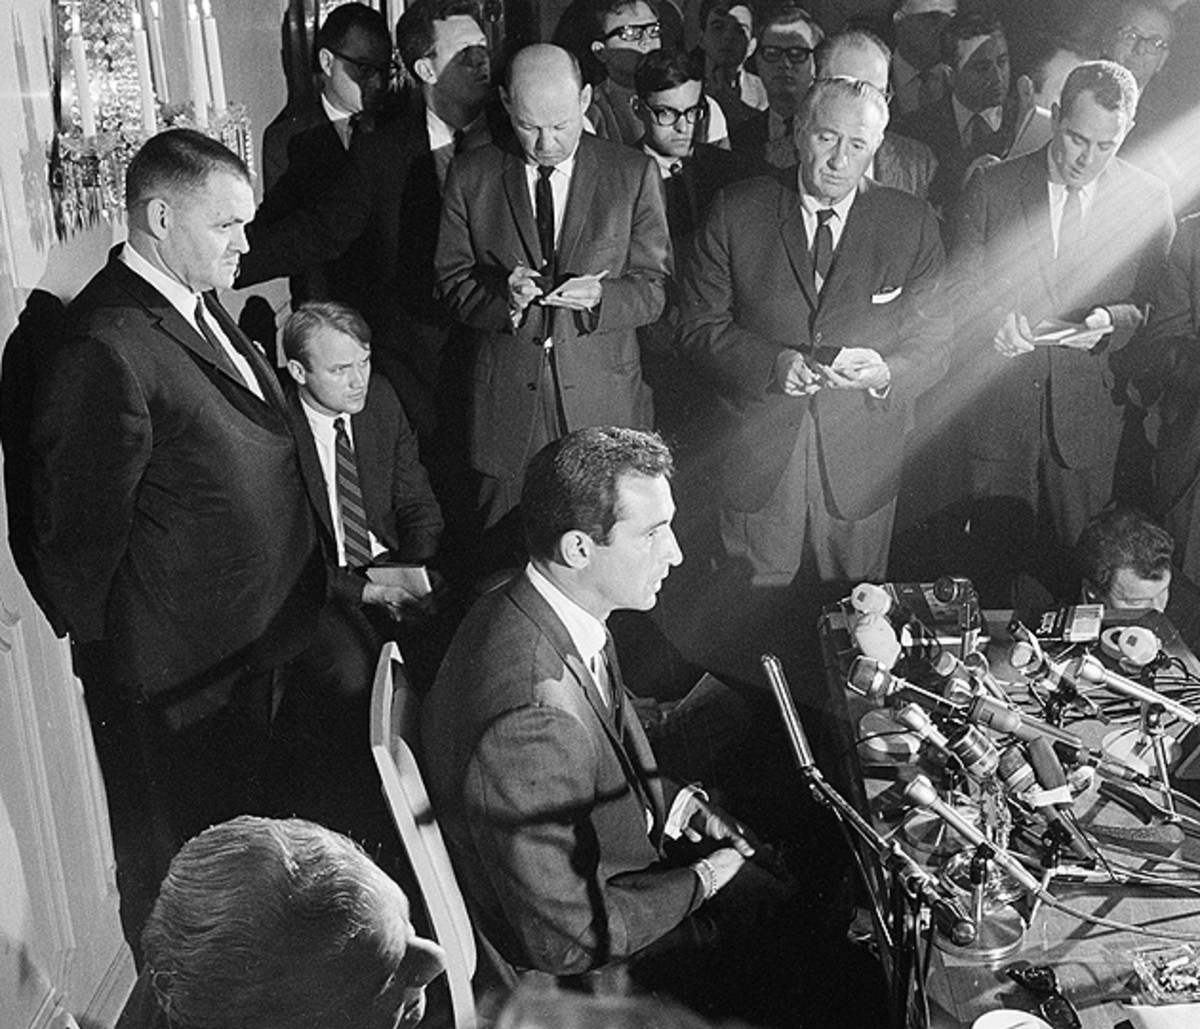 Koufax announced his retirement in the Sansui room of the Regent Beverly Wilshire Hotel on Nov. 18, 1966.